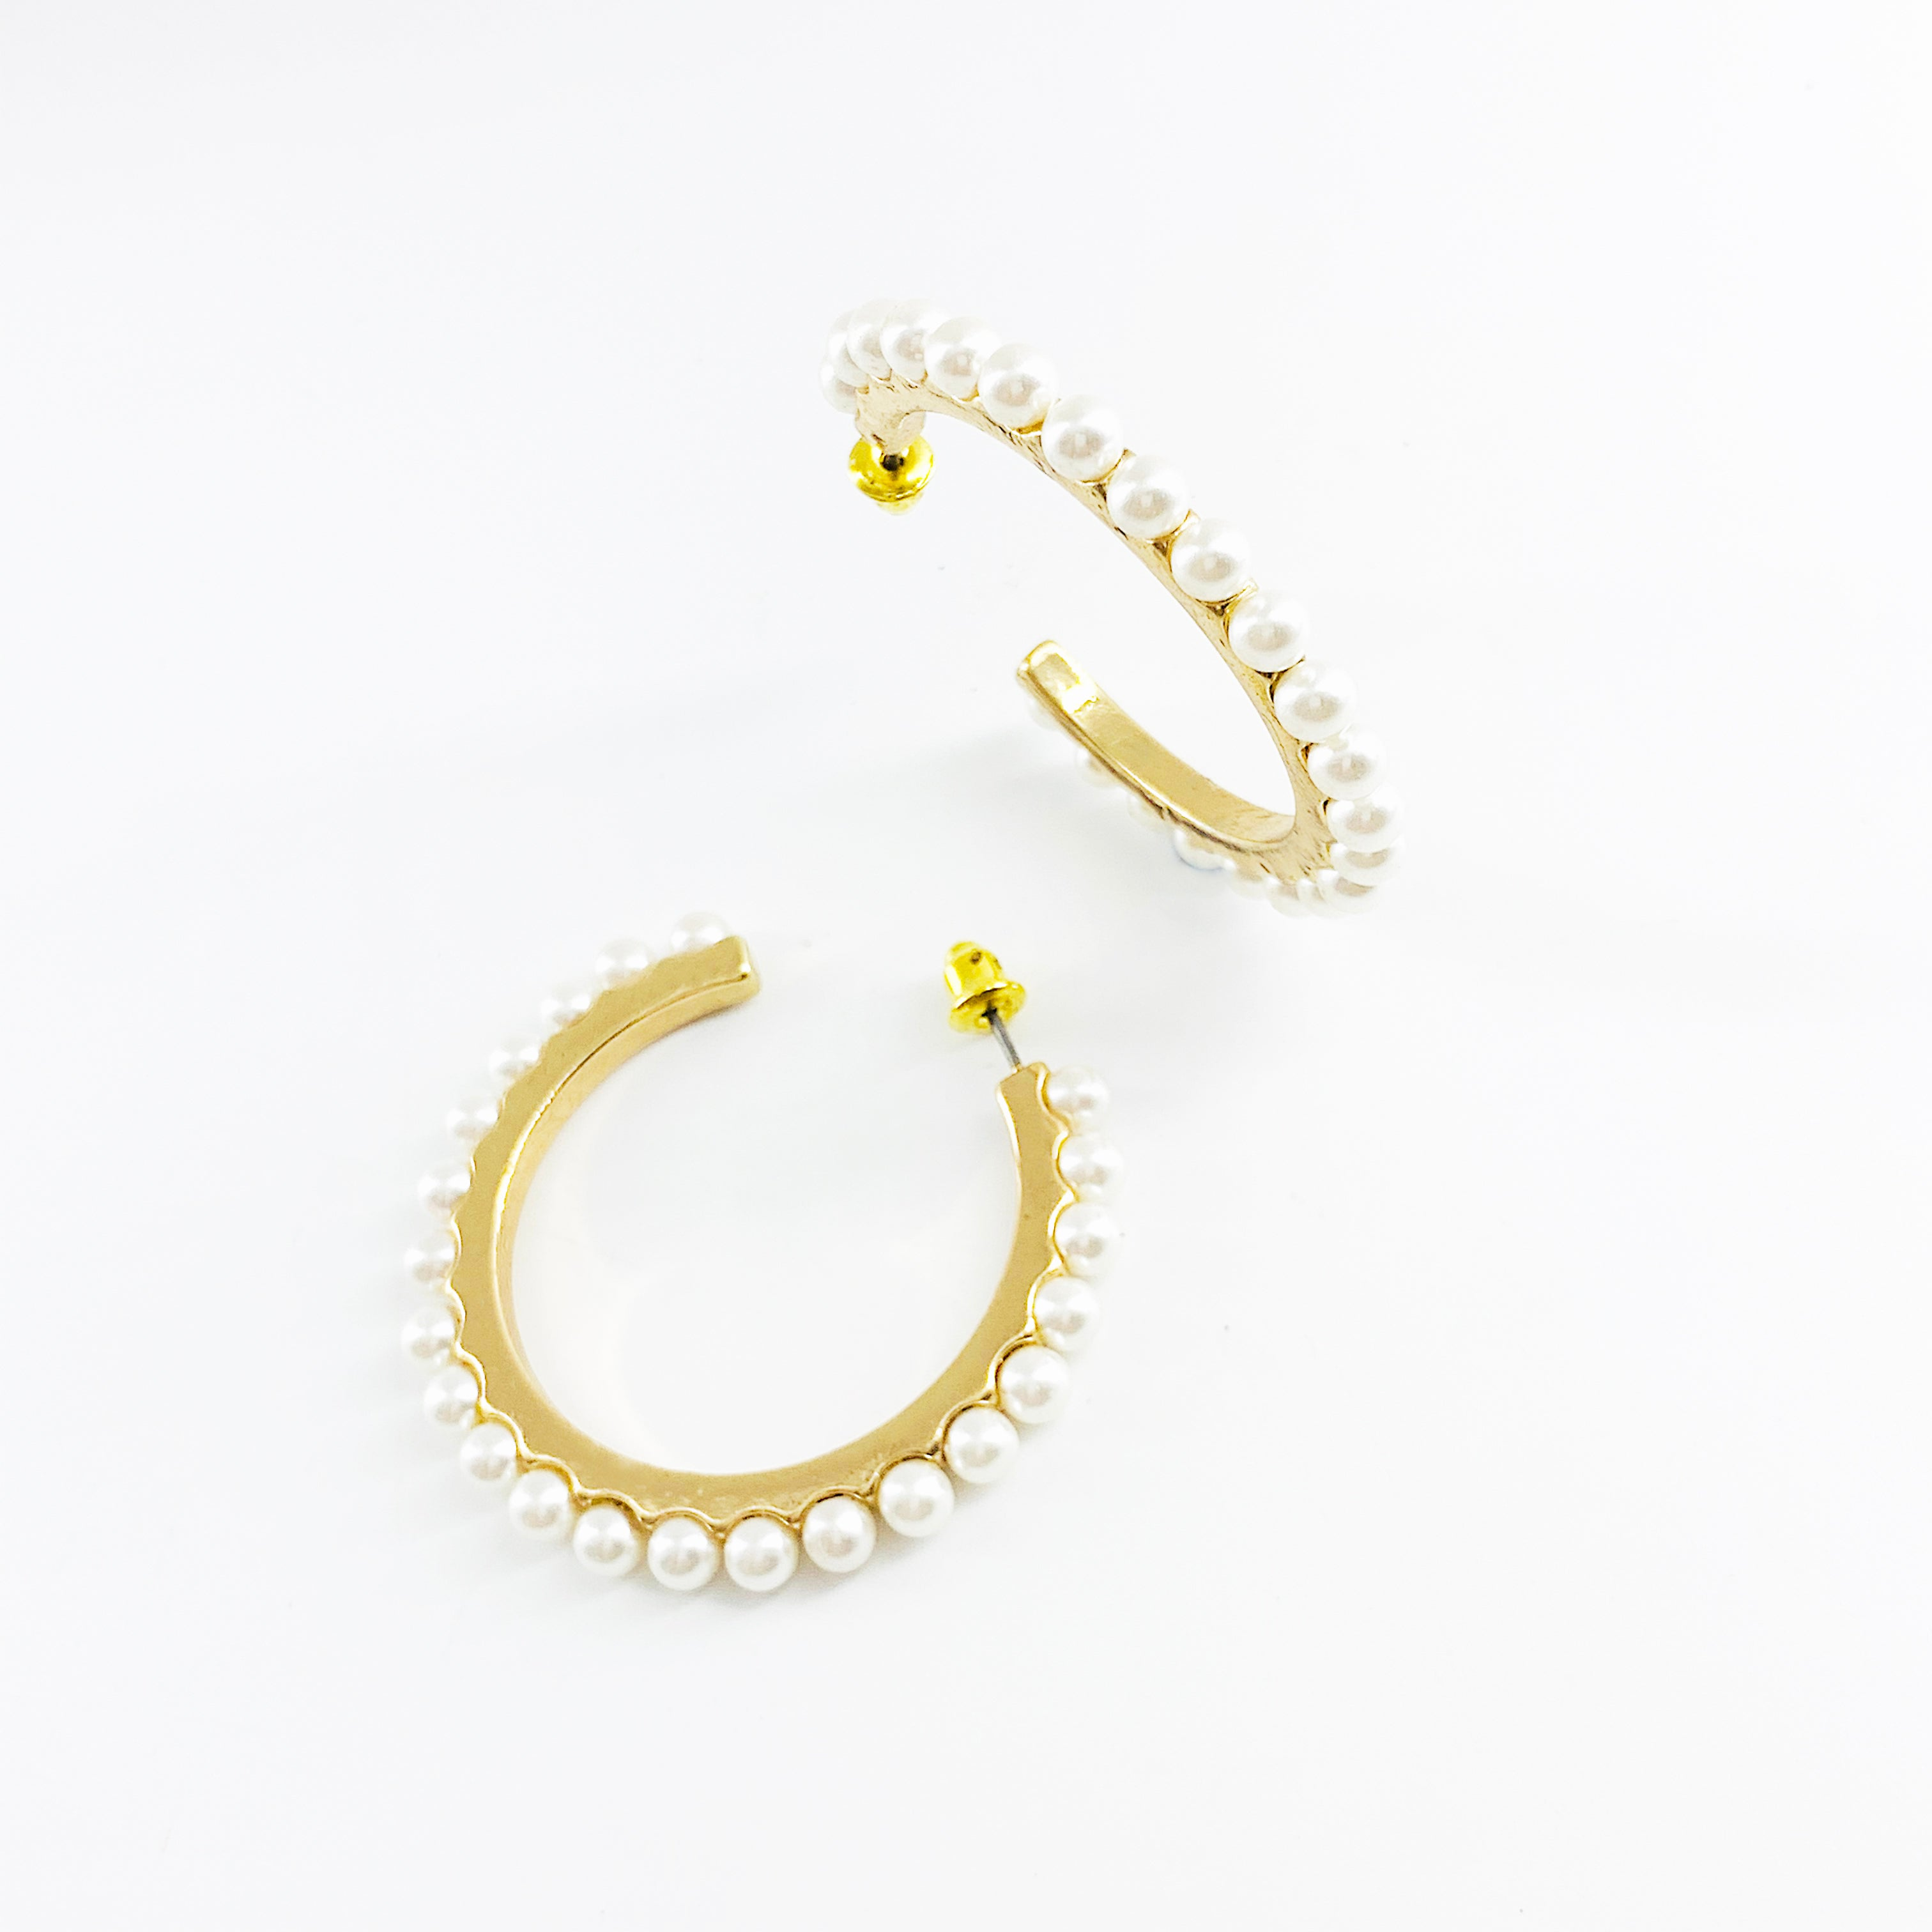 Gold hoop earrings with row of pearls